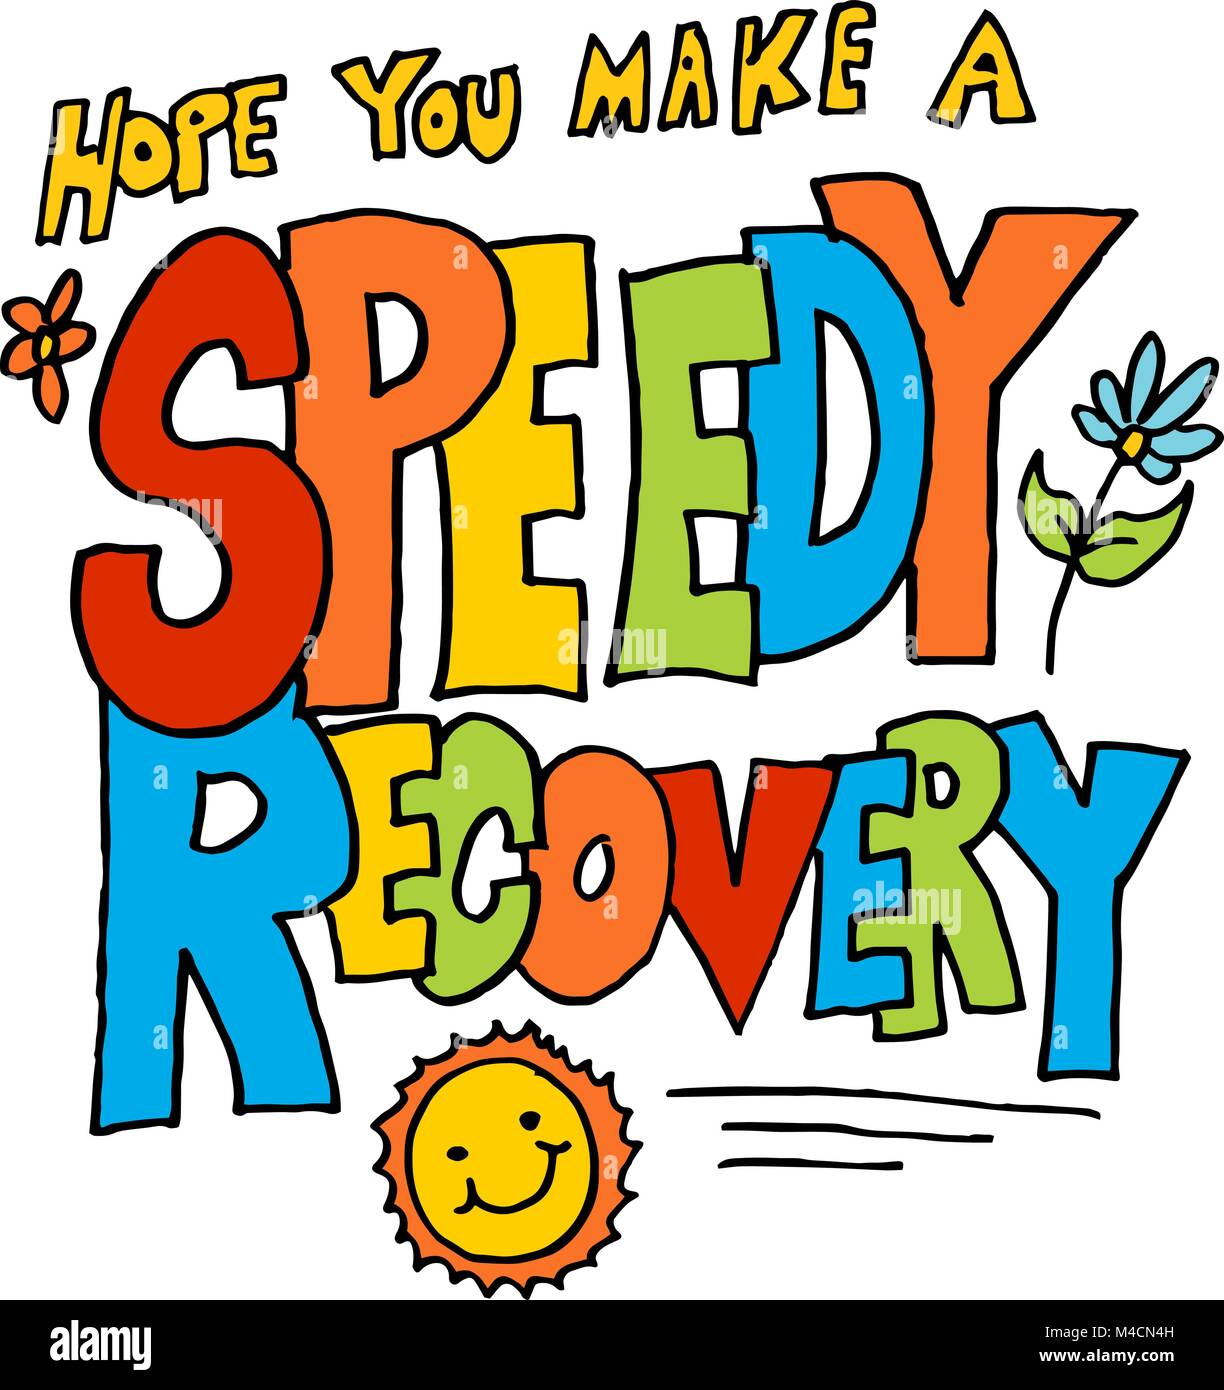 an image of a hope you make a speedy recovery message